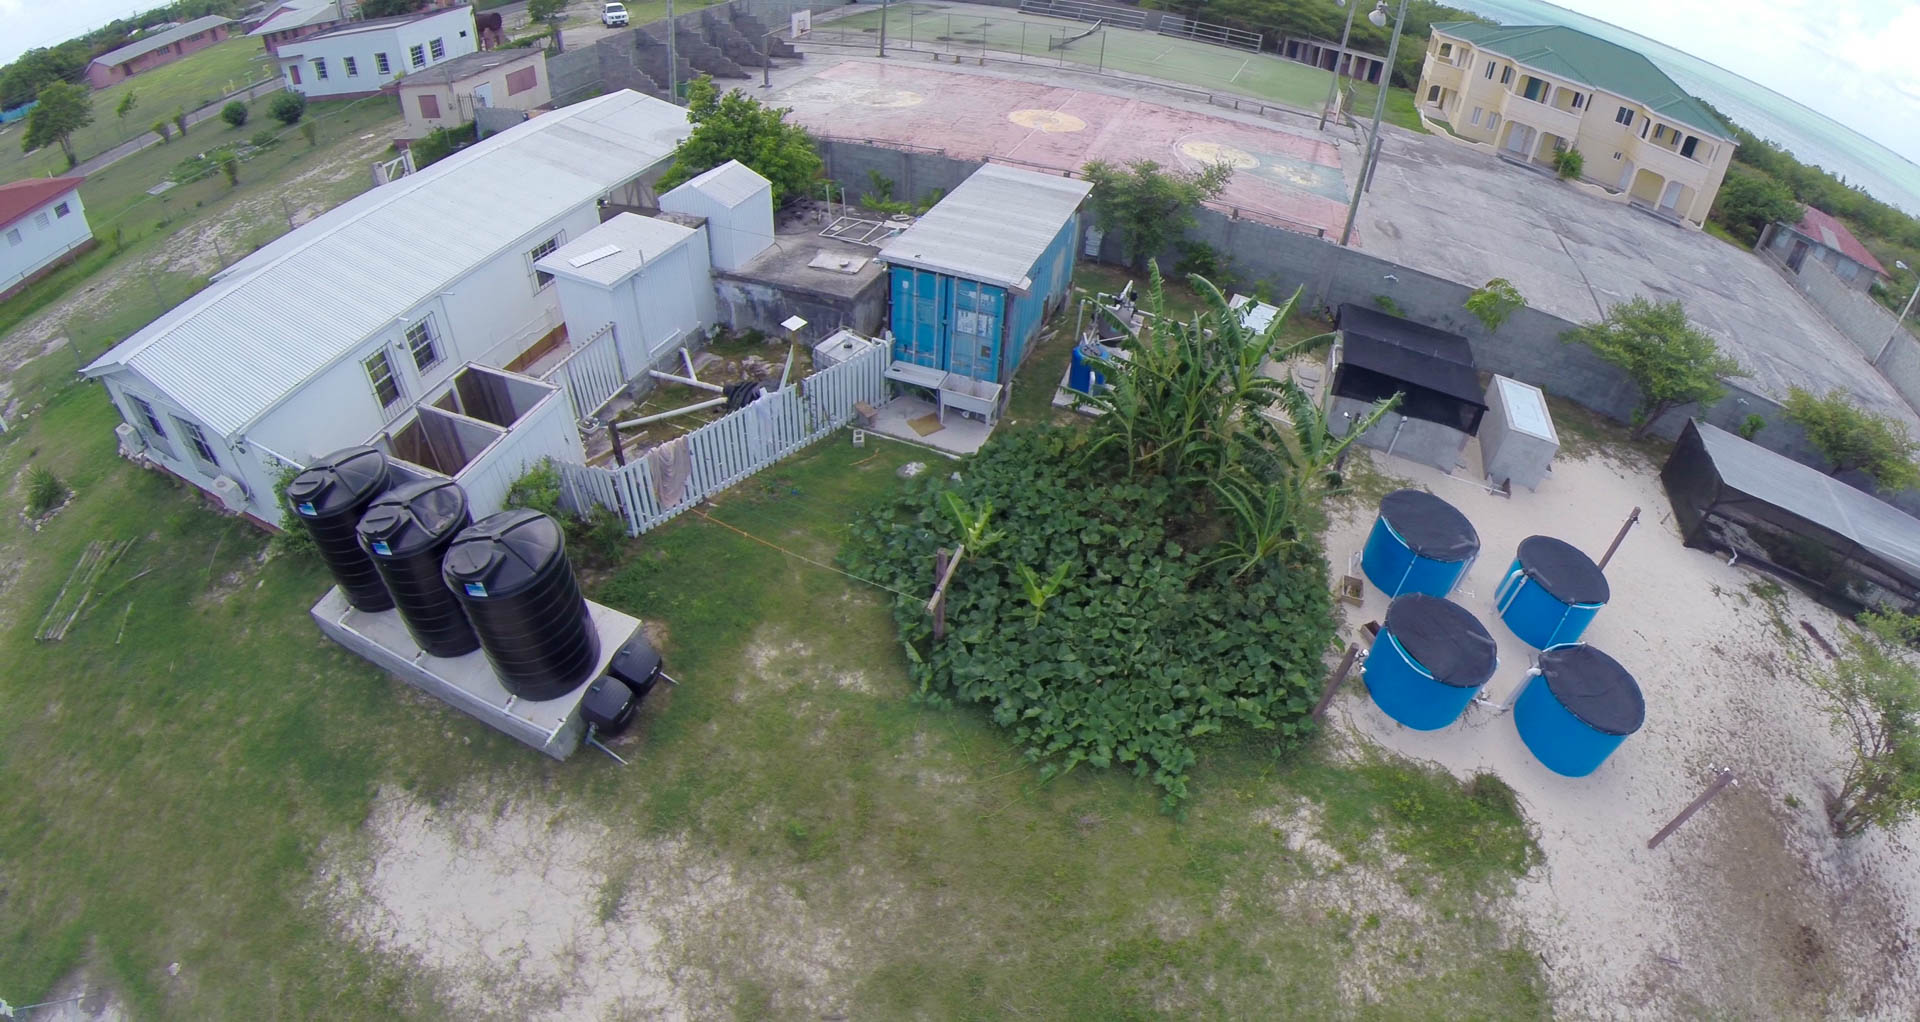 Part of the Barbuda Research Complex - Quadcopter Still, Tom Miller